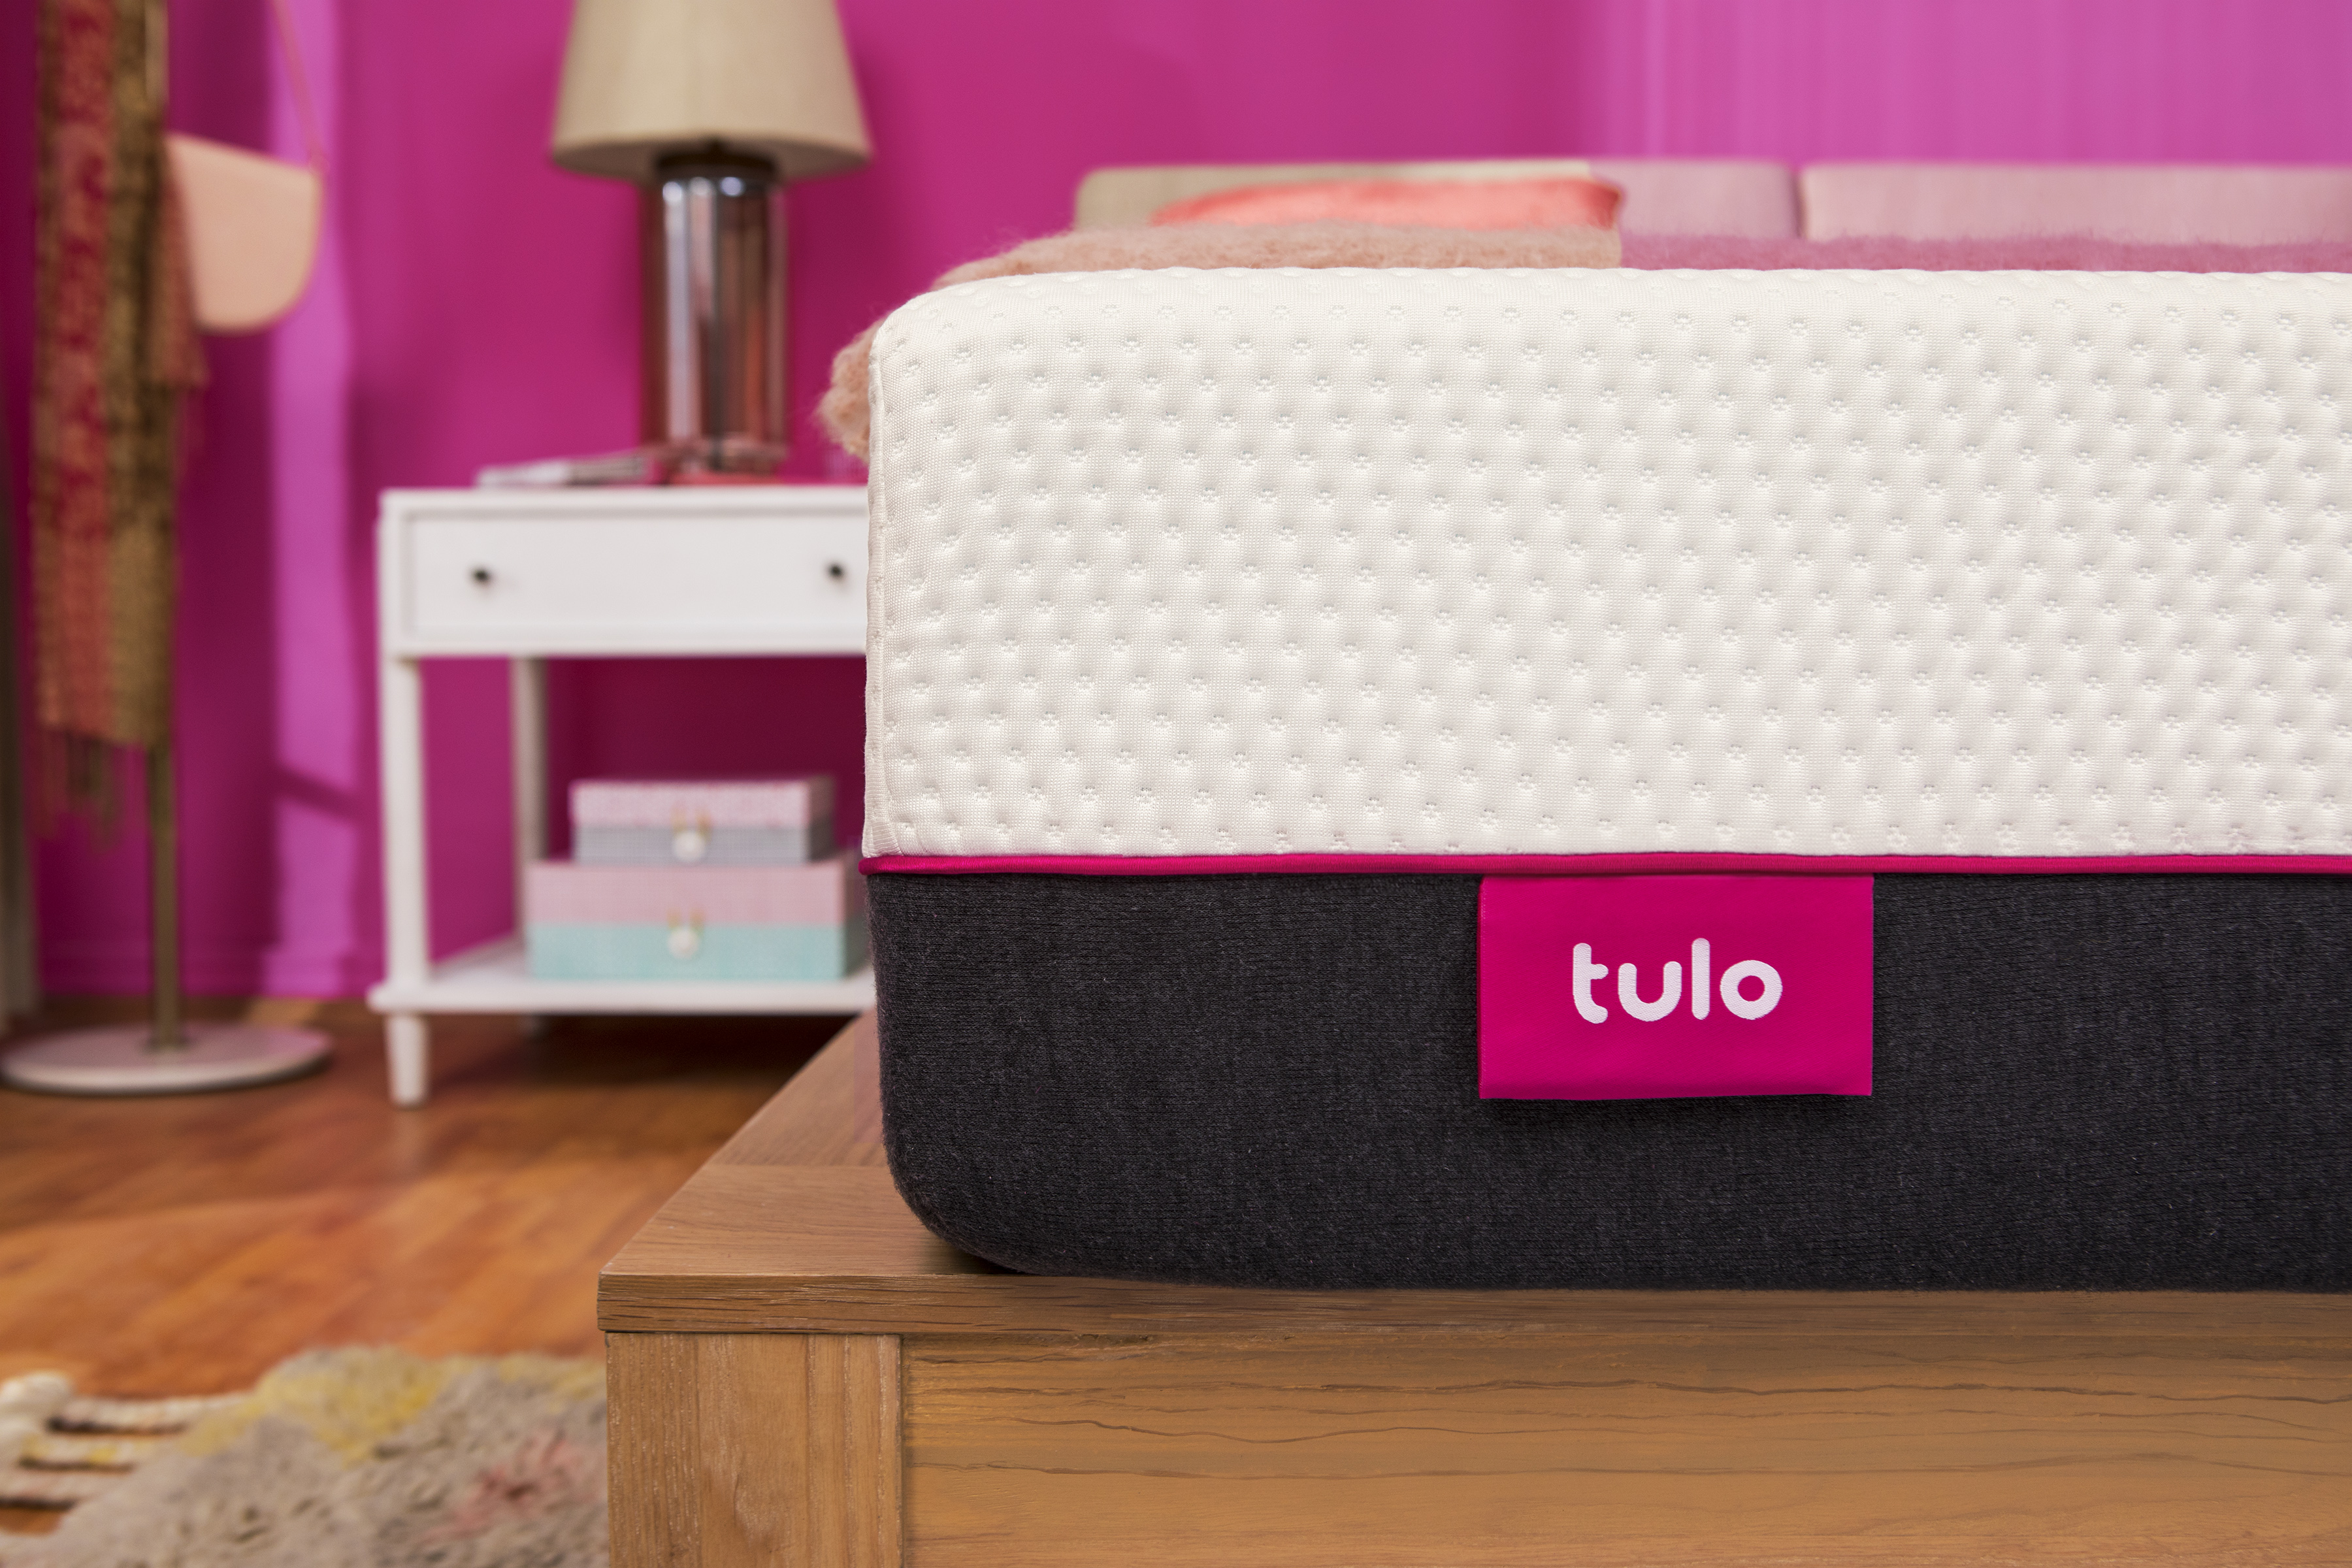 Tulo Is A Bed In A Box That You Can Really Try Before You Buy